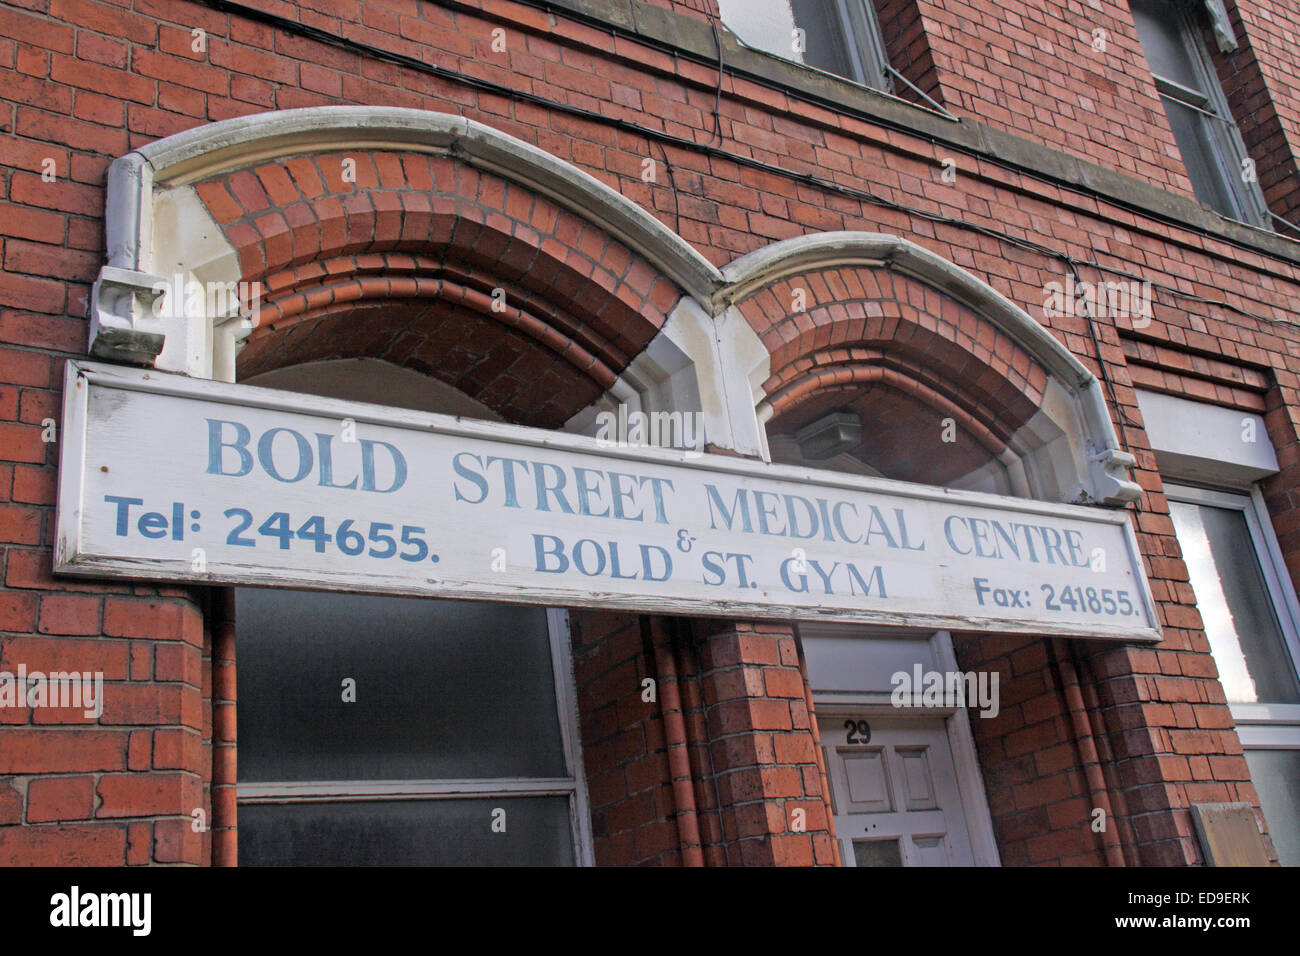 Medical Centre, Bold St, Warrington, Cheshire, England, UK - Stock Image